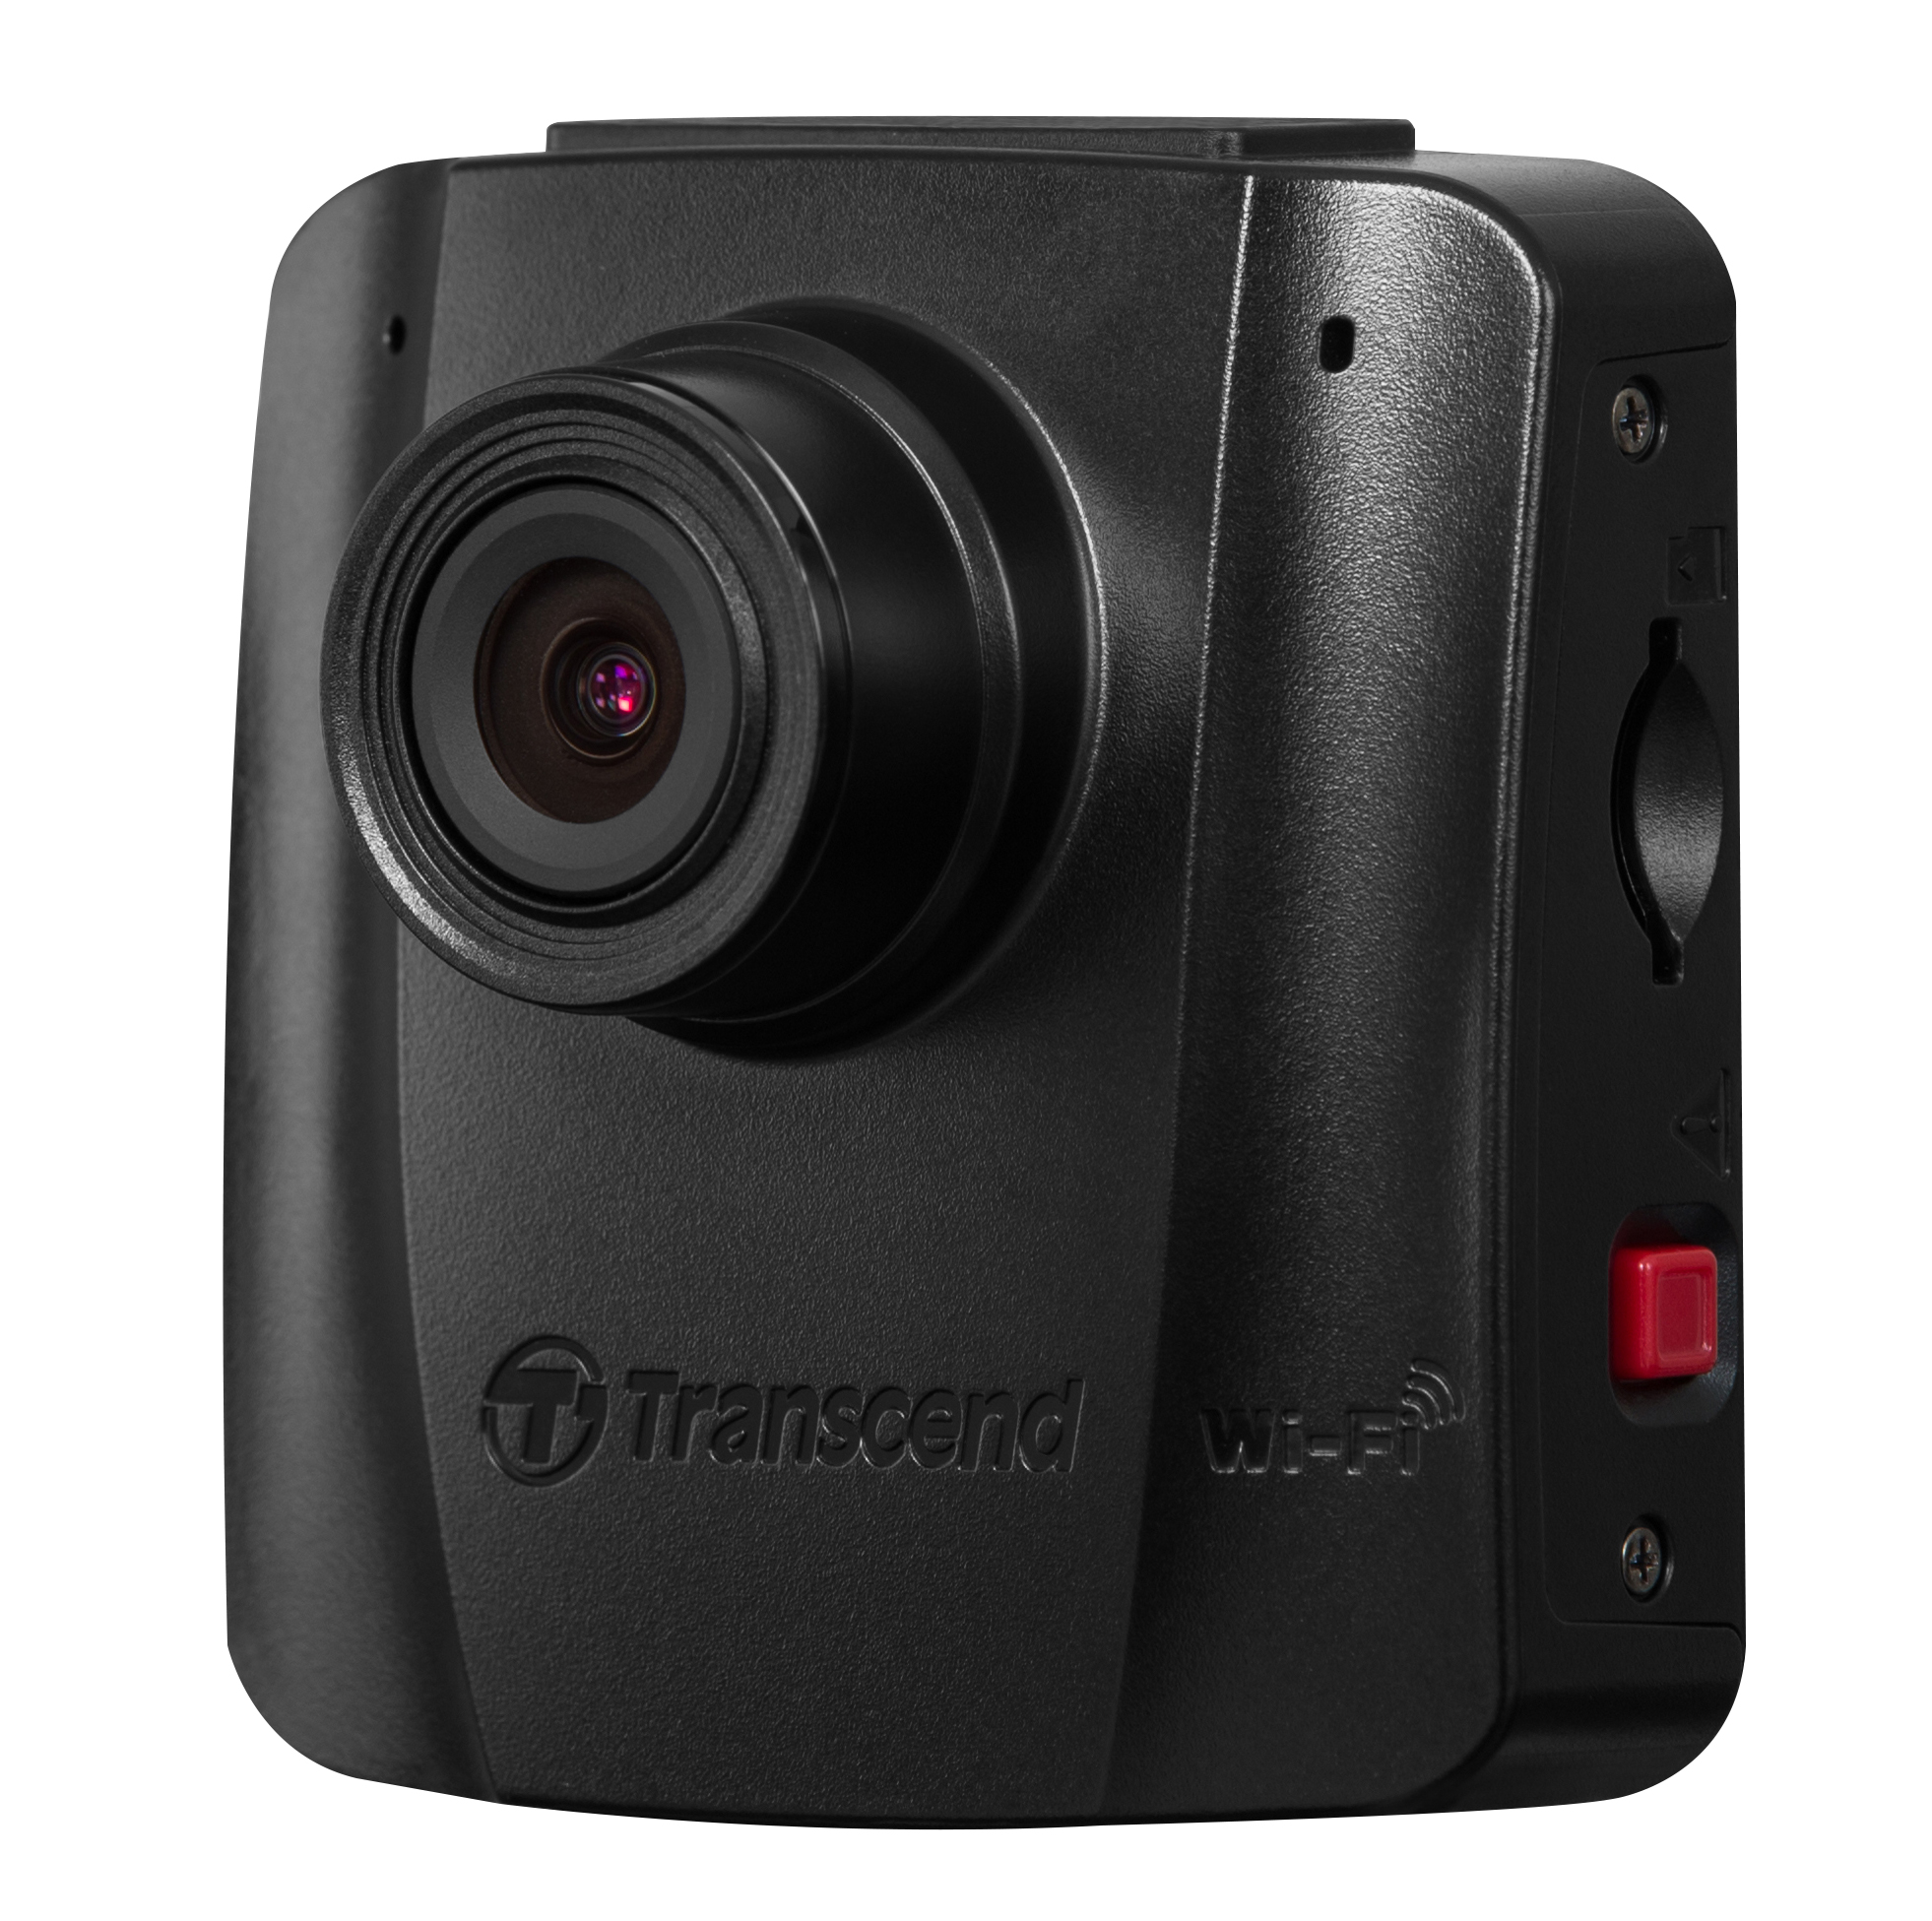 DrivePro 50 Car Video Recorder / Transcend Information, Inc.